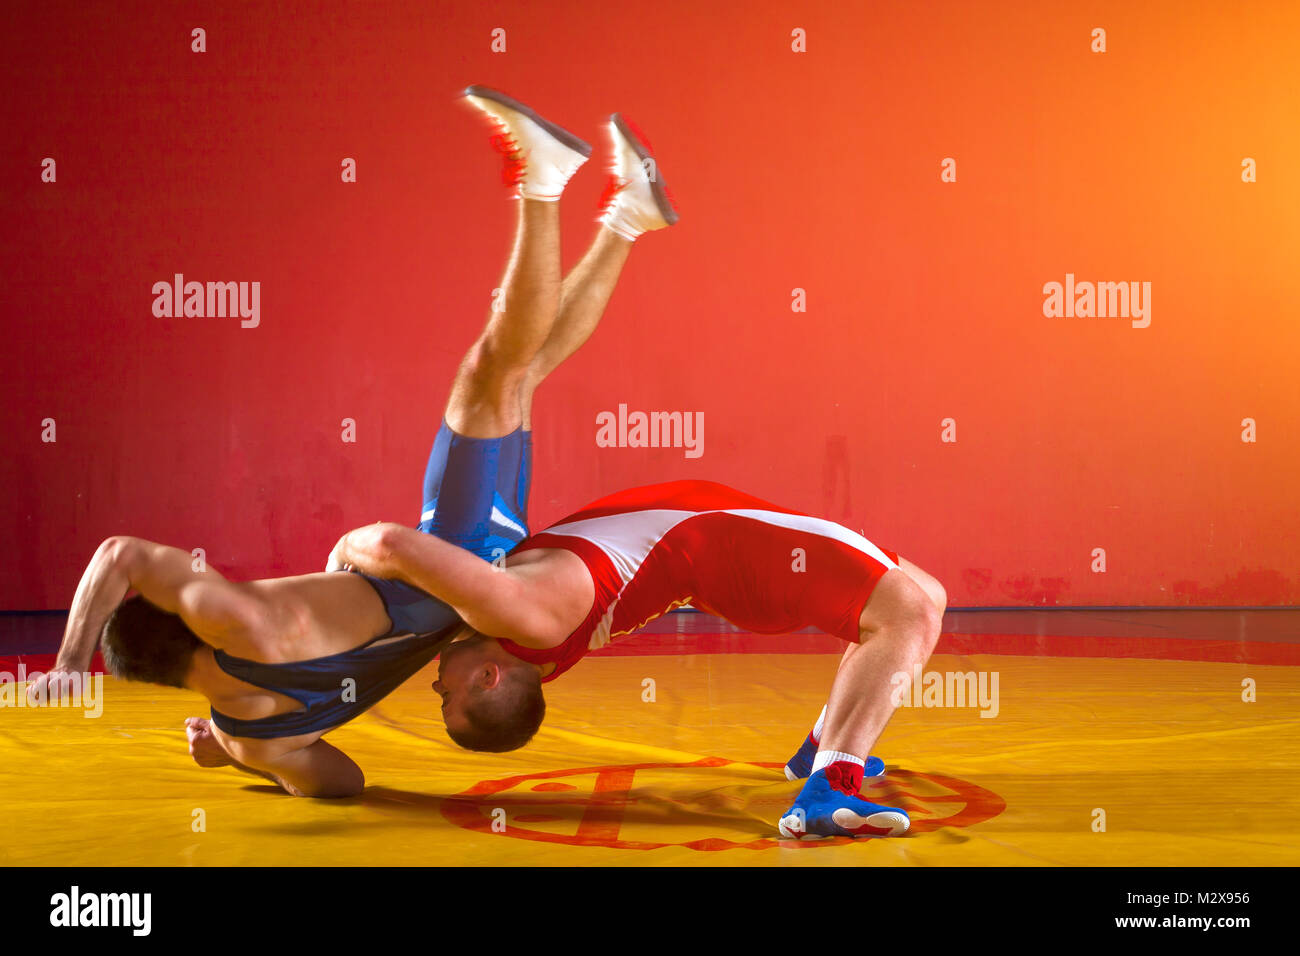 Two  strong men in blue and red wrestling tights are wrestlng and making a suplex wrestling on a yellow wrestling - Stock Image